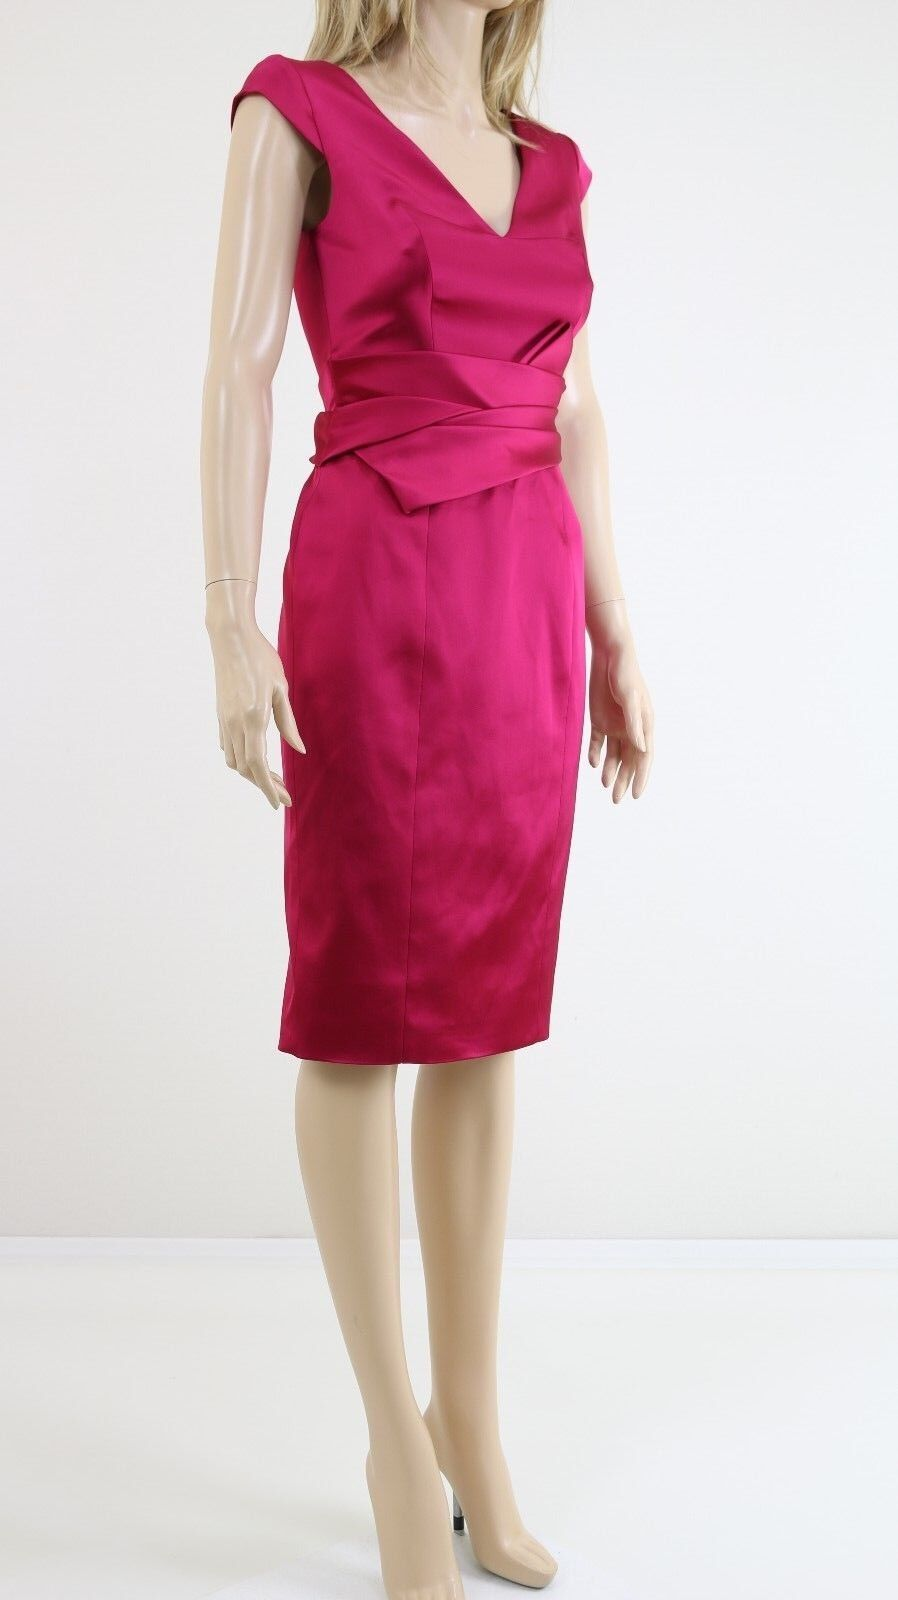 Karen Millen Woherren Satin Cocktail Fuchsia Rosa Pencil Evening Dress 6To16